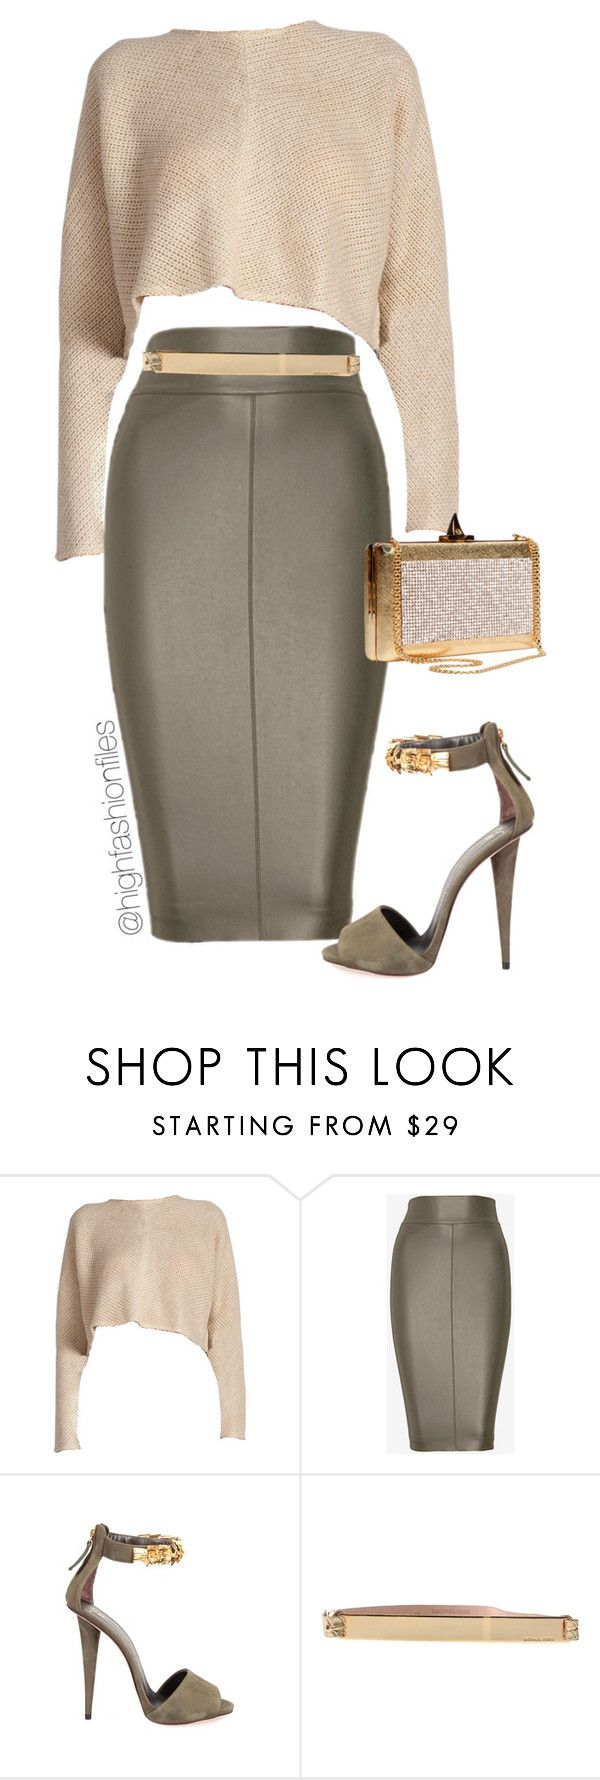 """""""Model Type"""" by highfashionfiles ❤ liked on Polyvore featuring Bailey 44, Elie Saab, Giuseppe Zanotti and MICHAEL Michael Kors"""